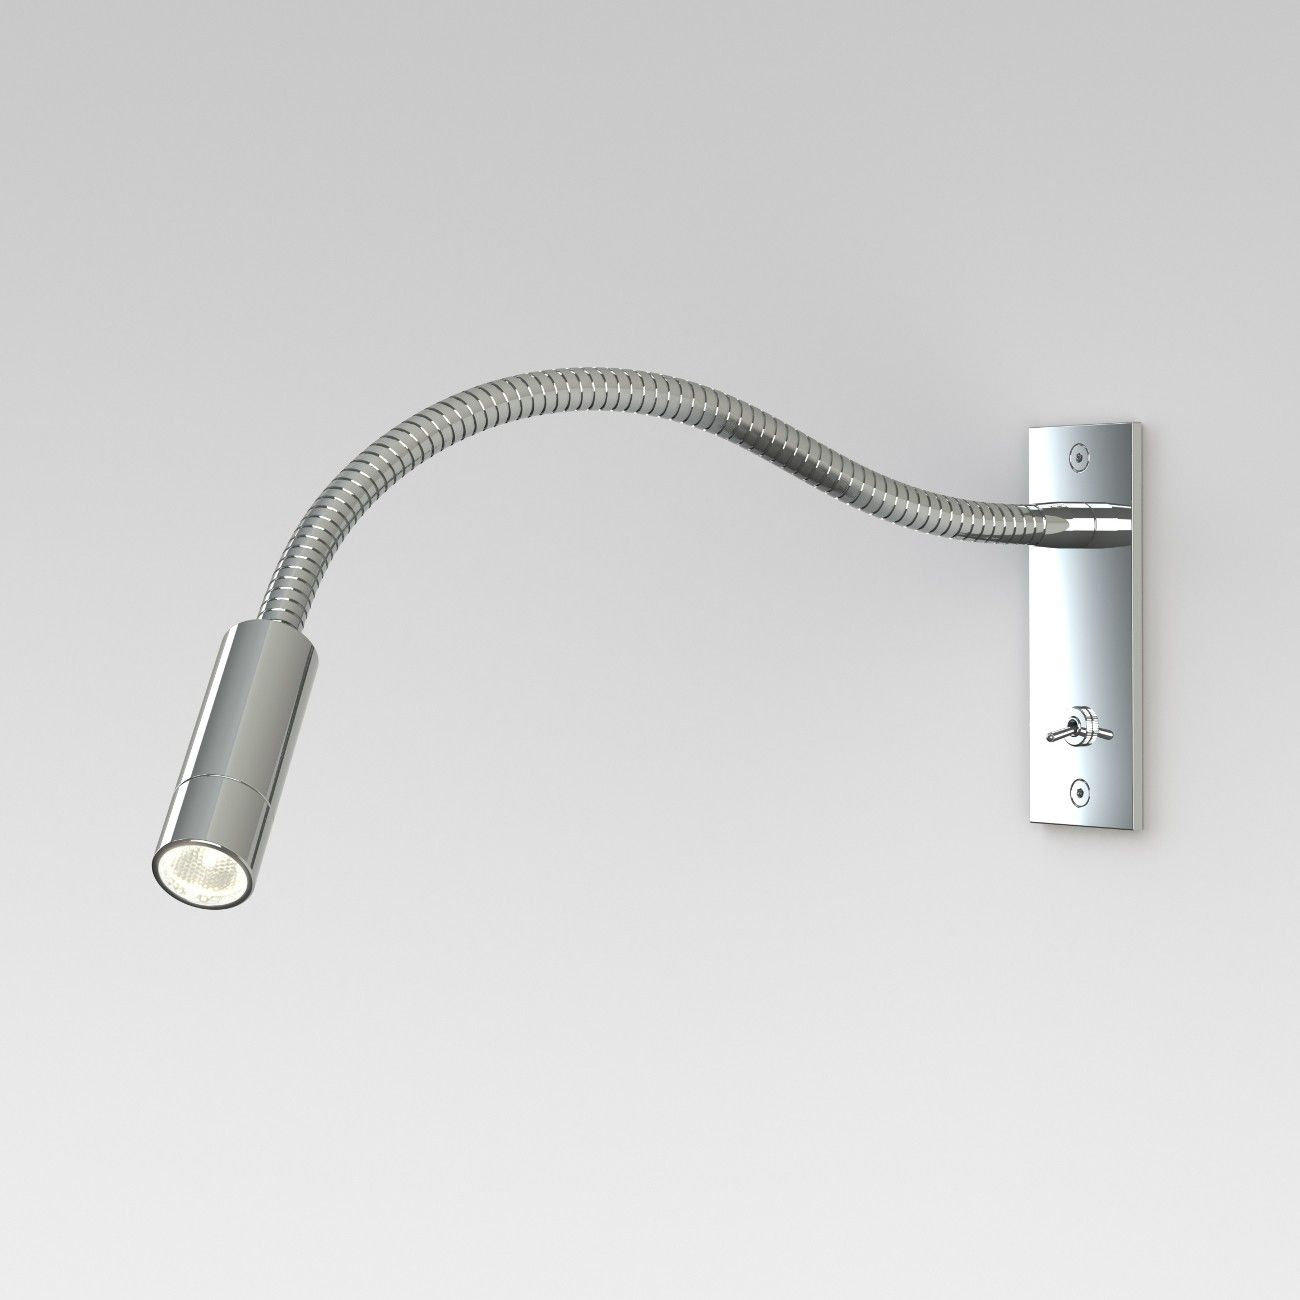 Schlafzimmer Lampe Wandmontage Wandleuchten Leo Switched Led Chrom Poliert Leselampe Led